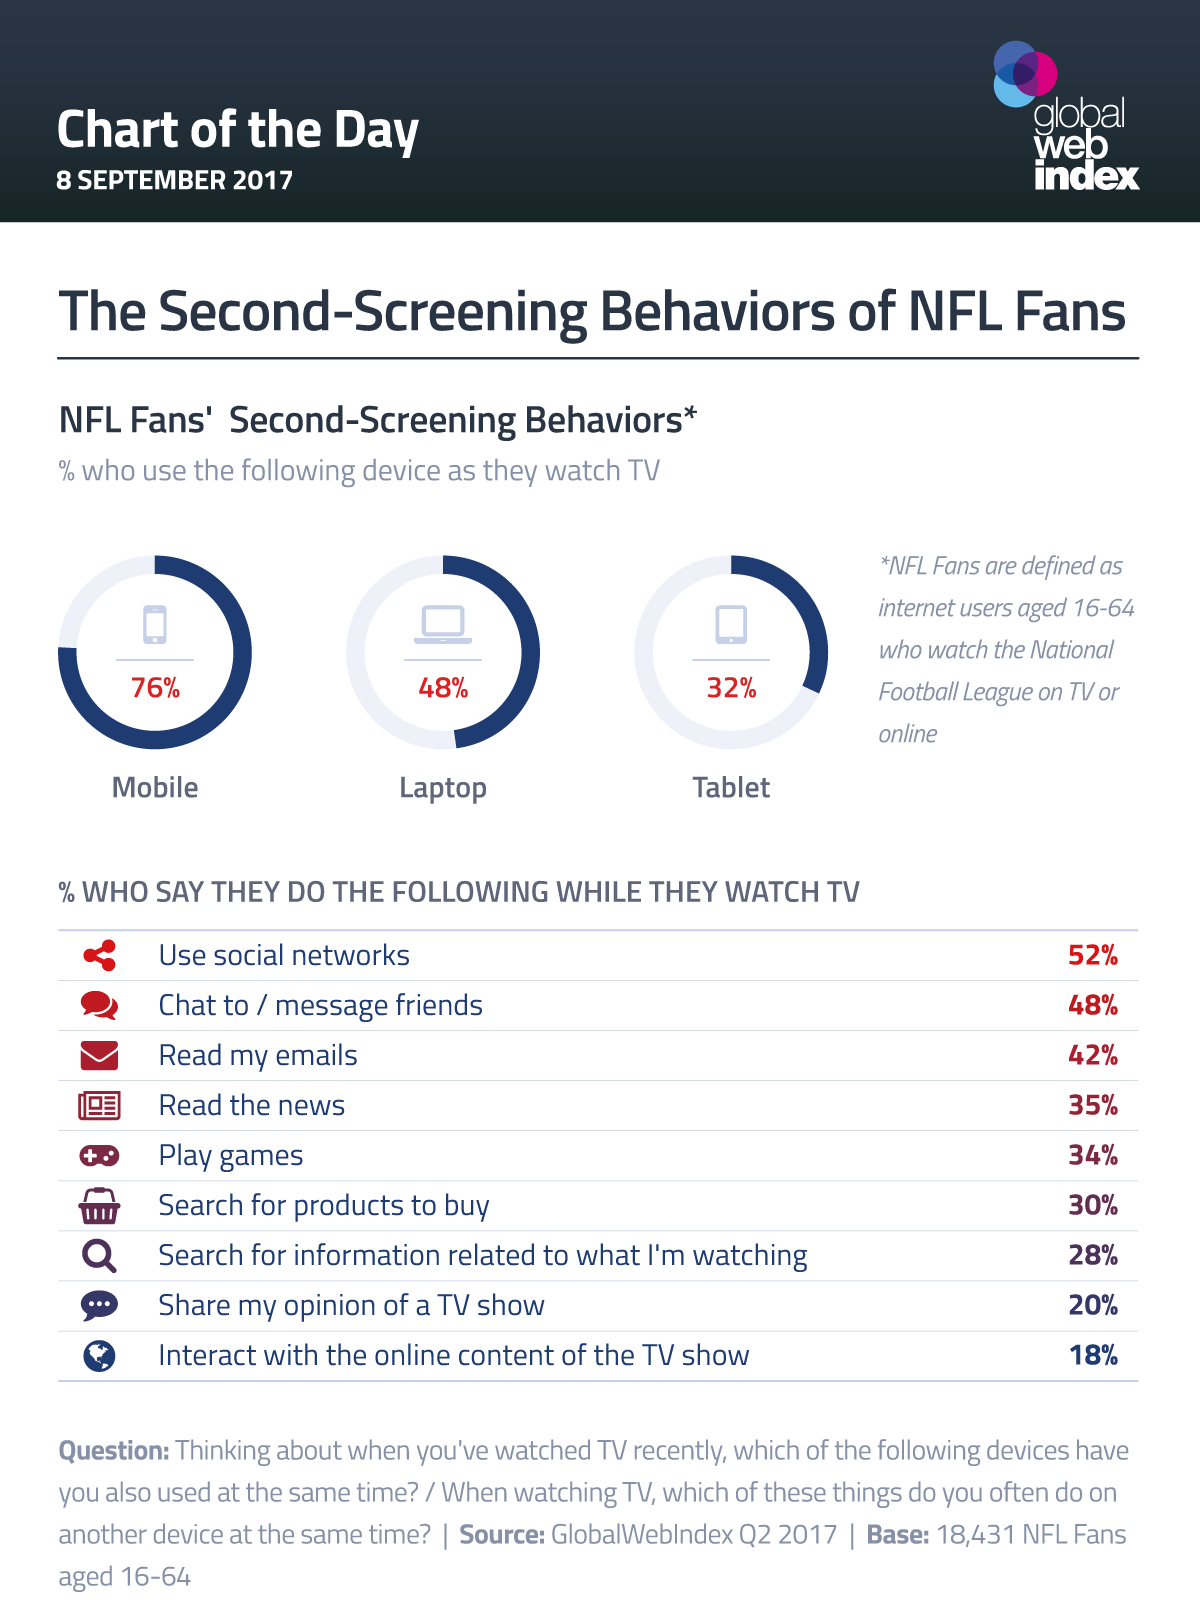 The Second-Screening Behaviors of NFL Fans